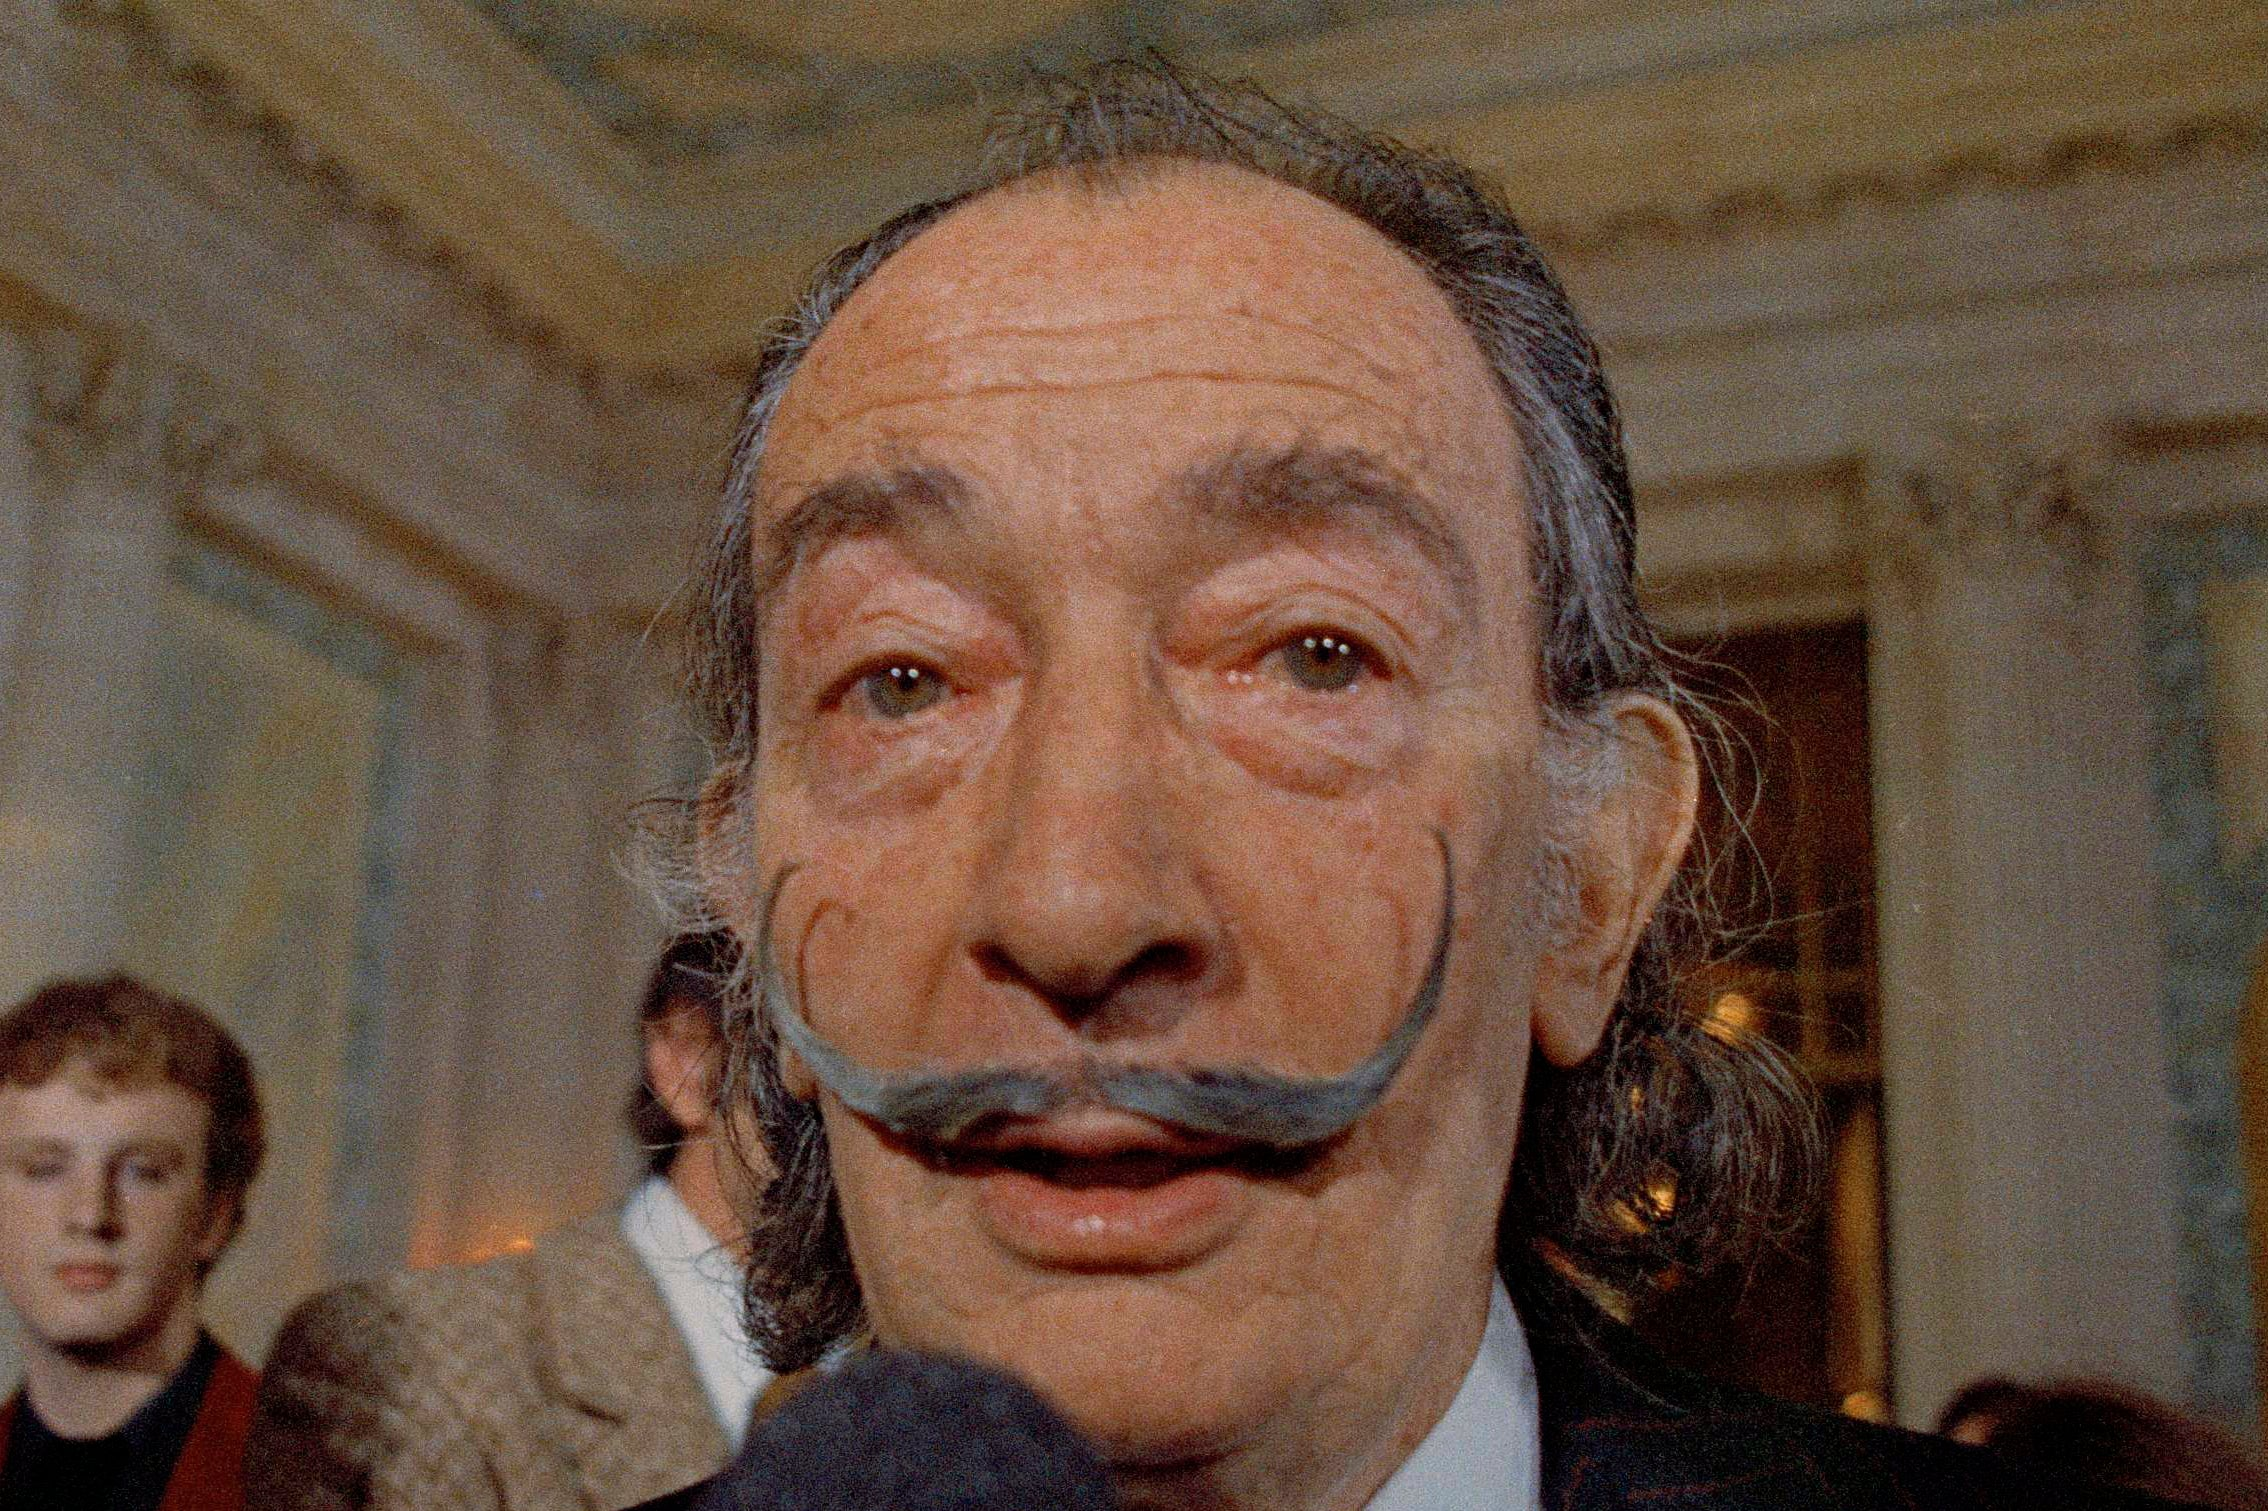 'It's A Miracle': Embalmer Says Salvador Dali's Mustache 'Still Intact' After 28 Years In Grave